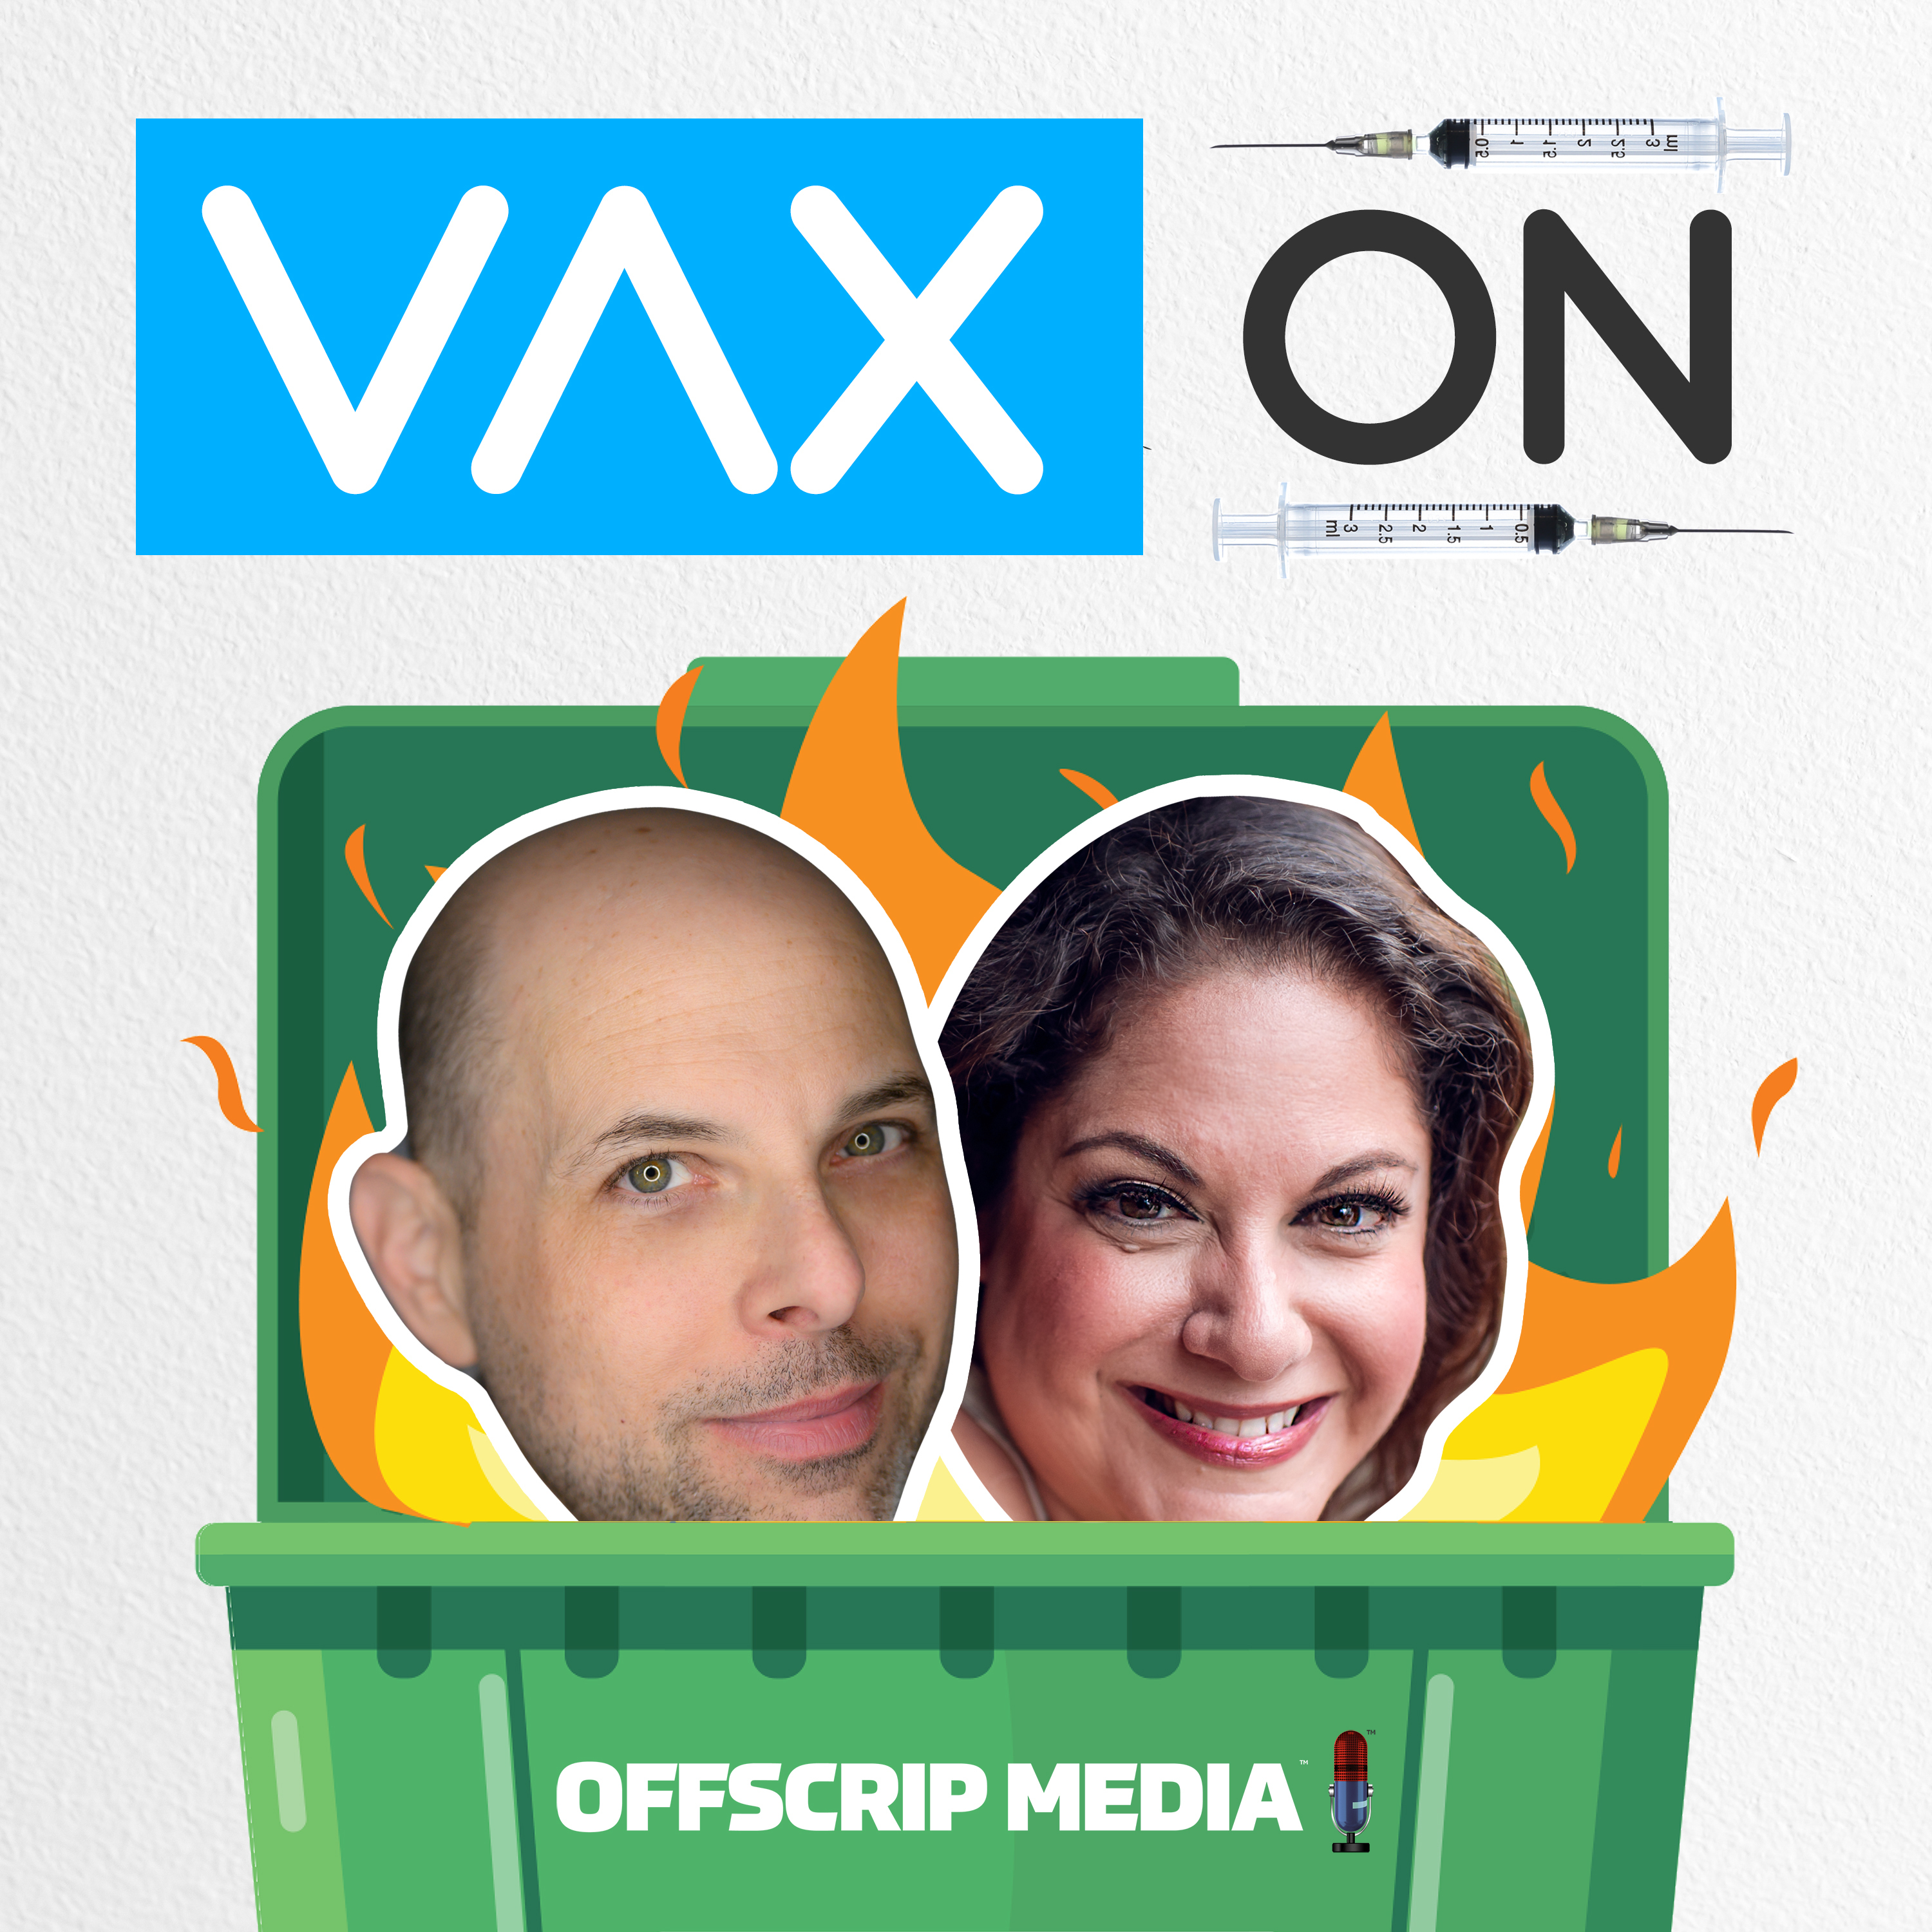 VAX ON: Vaccine Latecomers. Prom Drama and Magnetic Side Effects